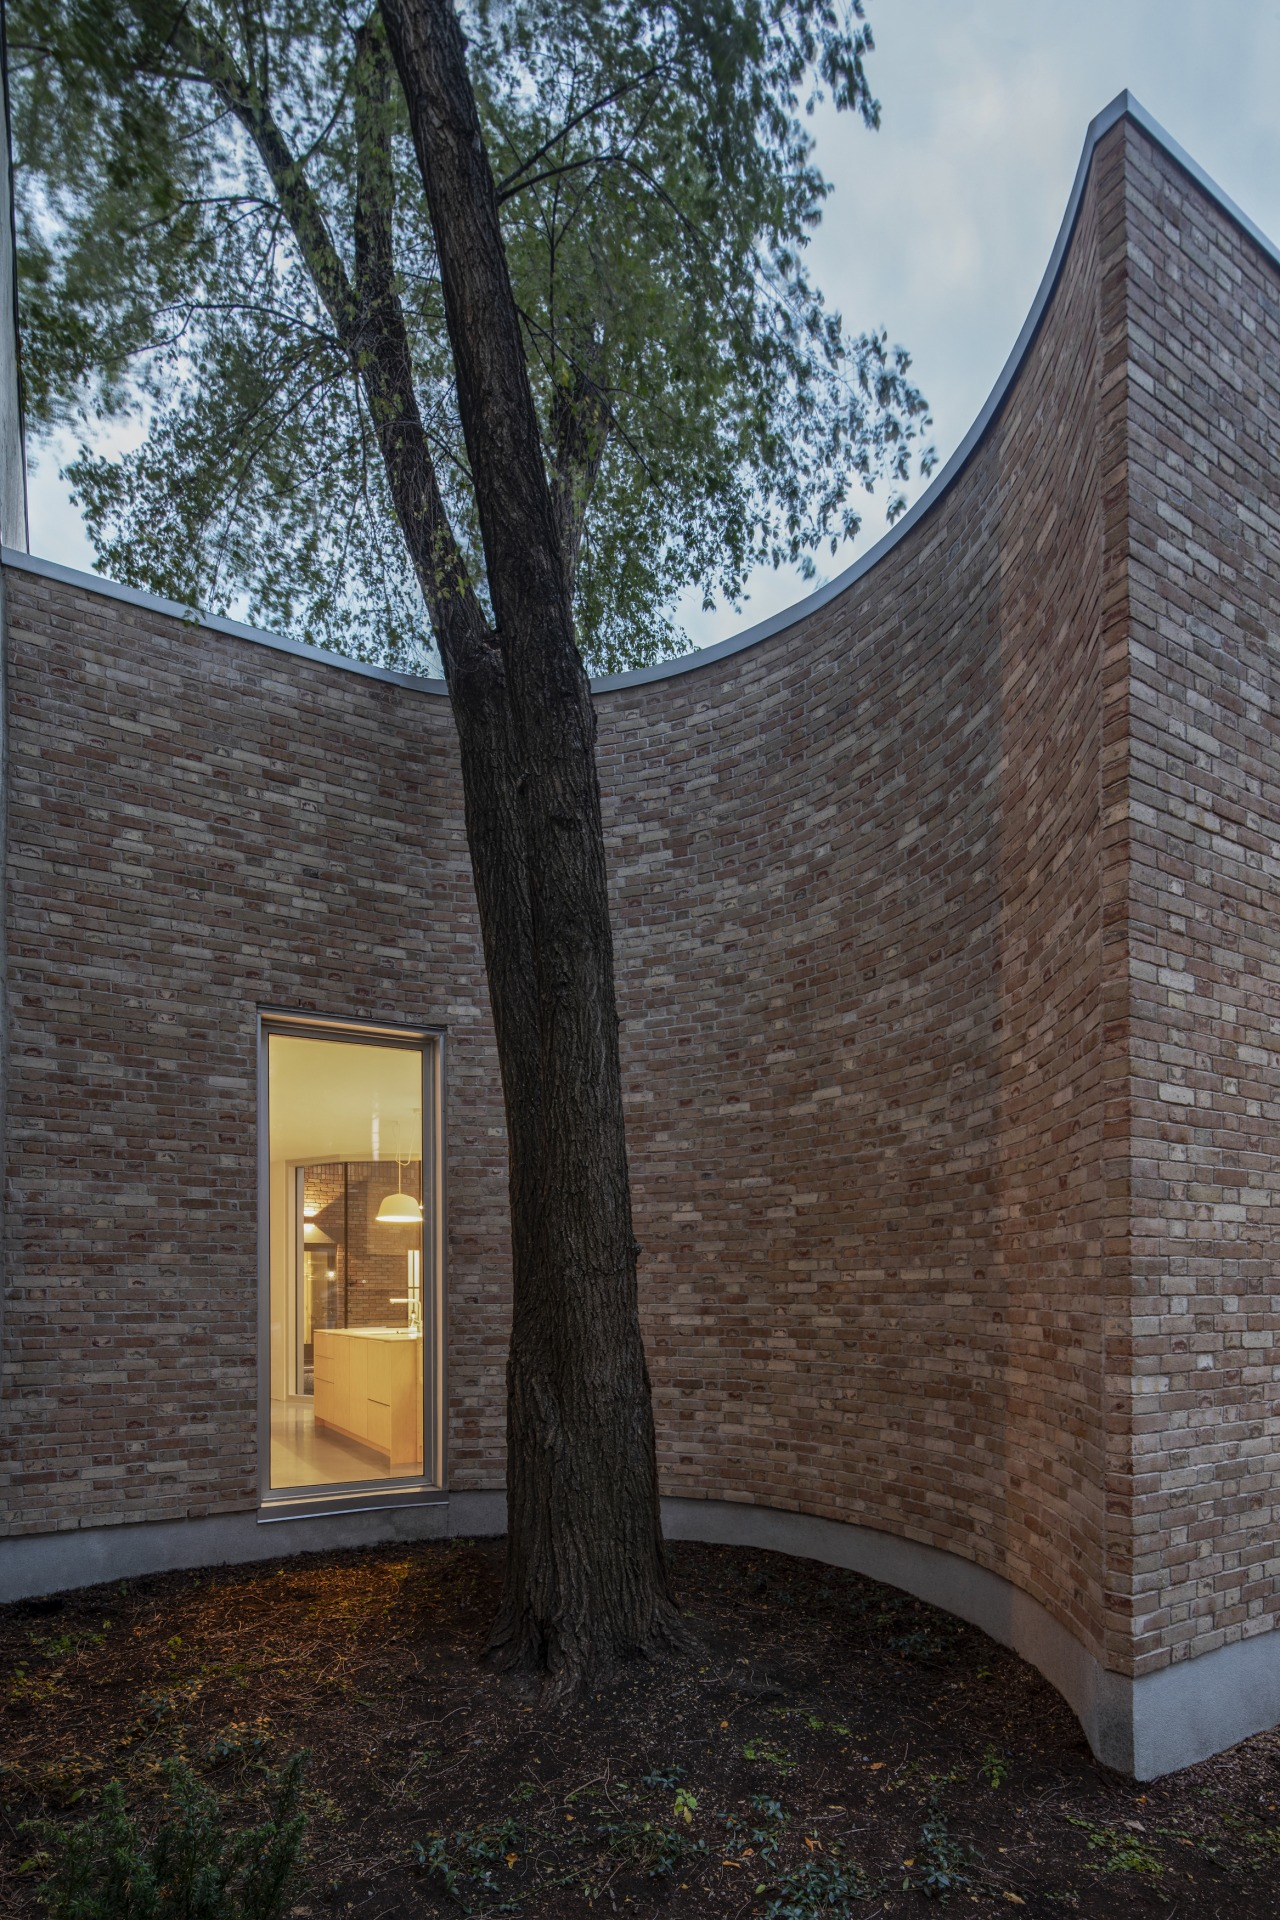 The elegantly curving facade accentuates the tree and